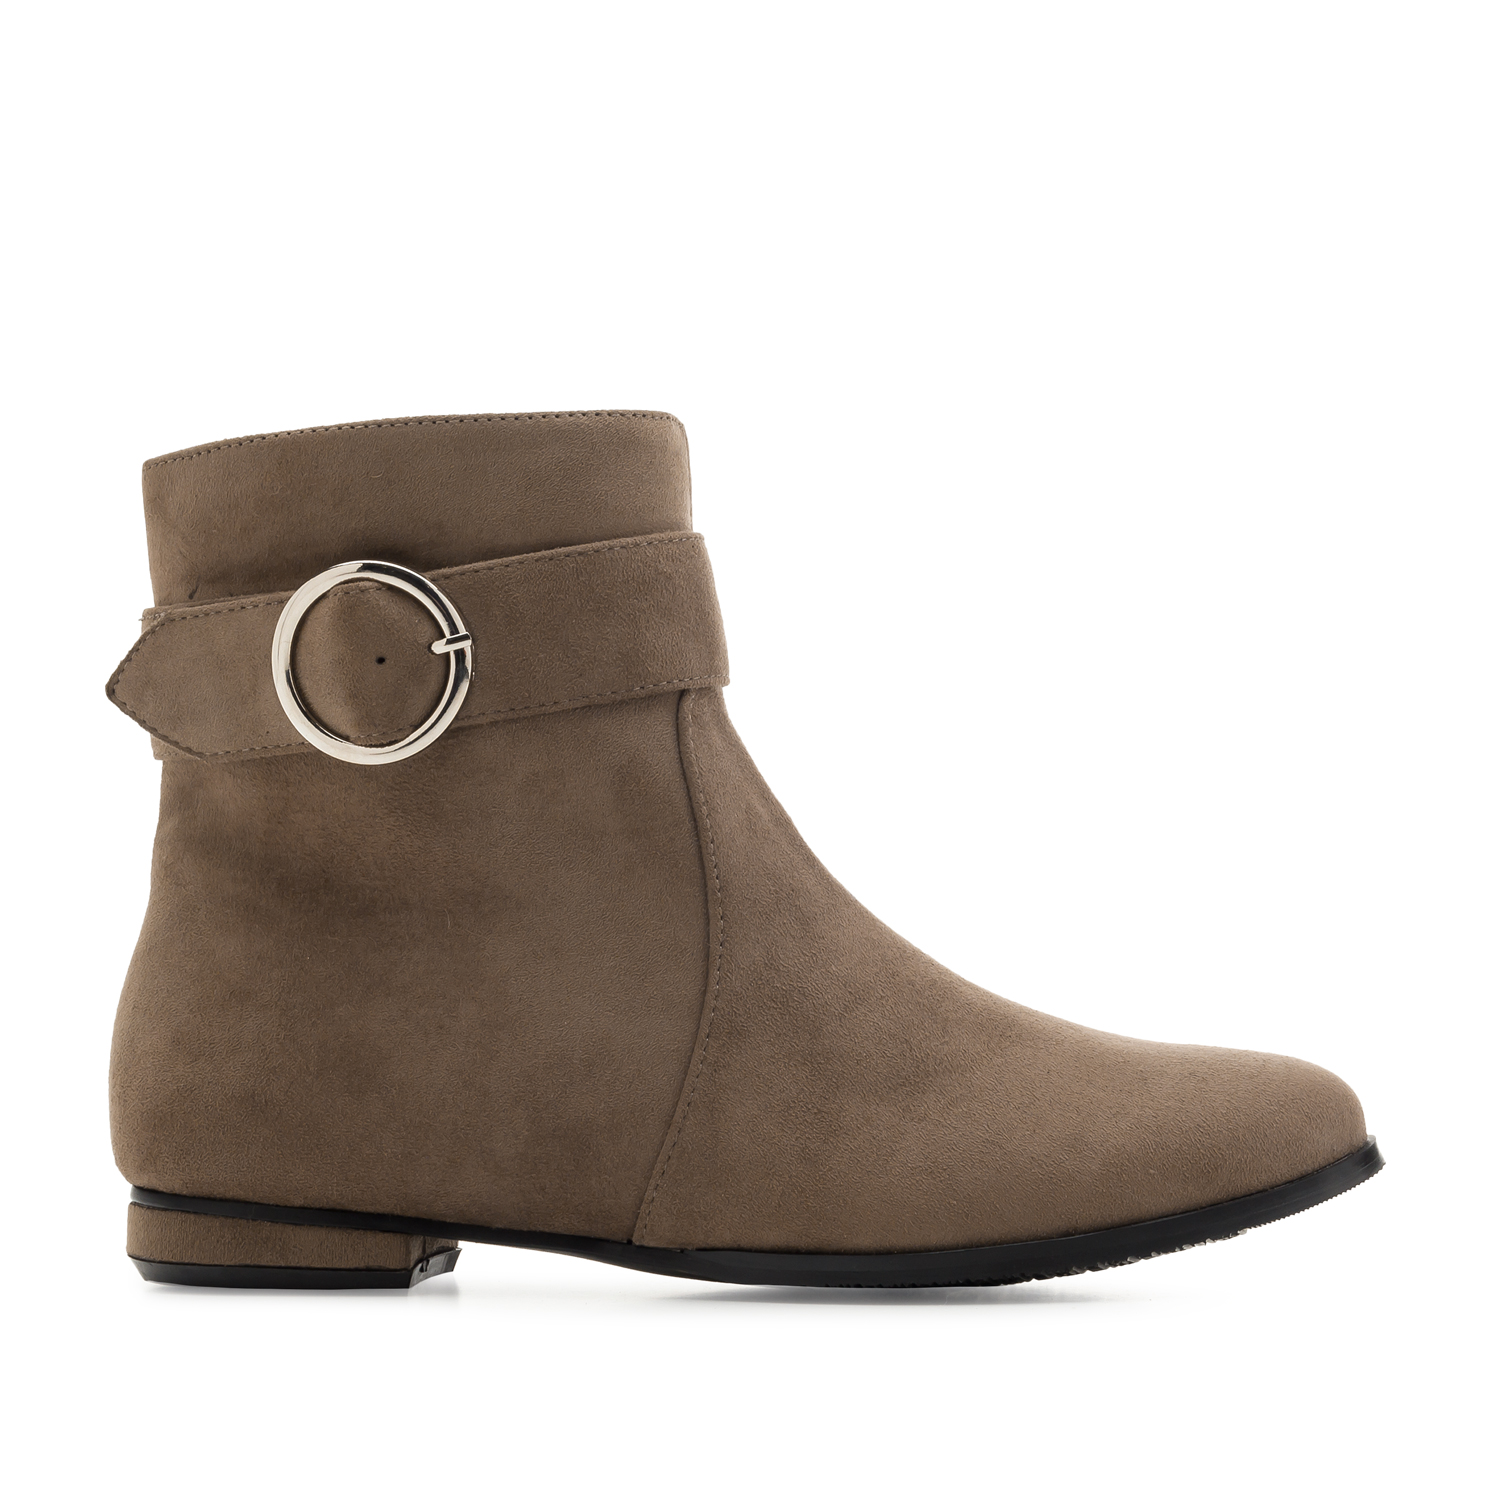 Flat Booties in Earth-coloured Suede